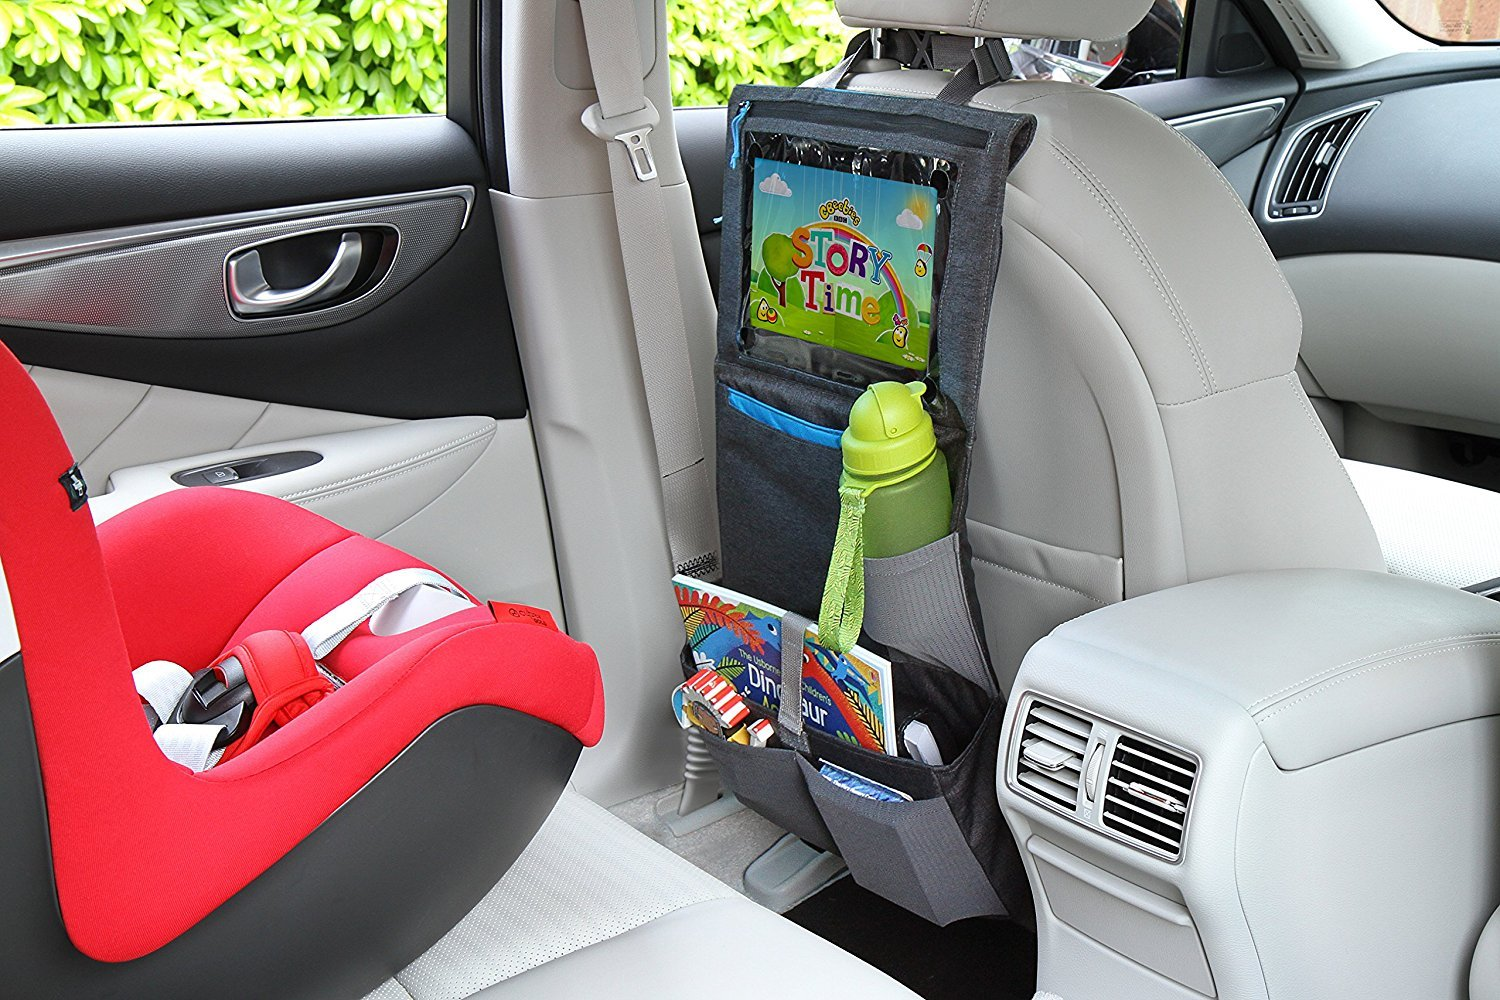 New Parts & Accessories Able Little Life Littlelife Car Seat Protector Baby Toddler Accessory Ebay Motors